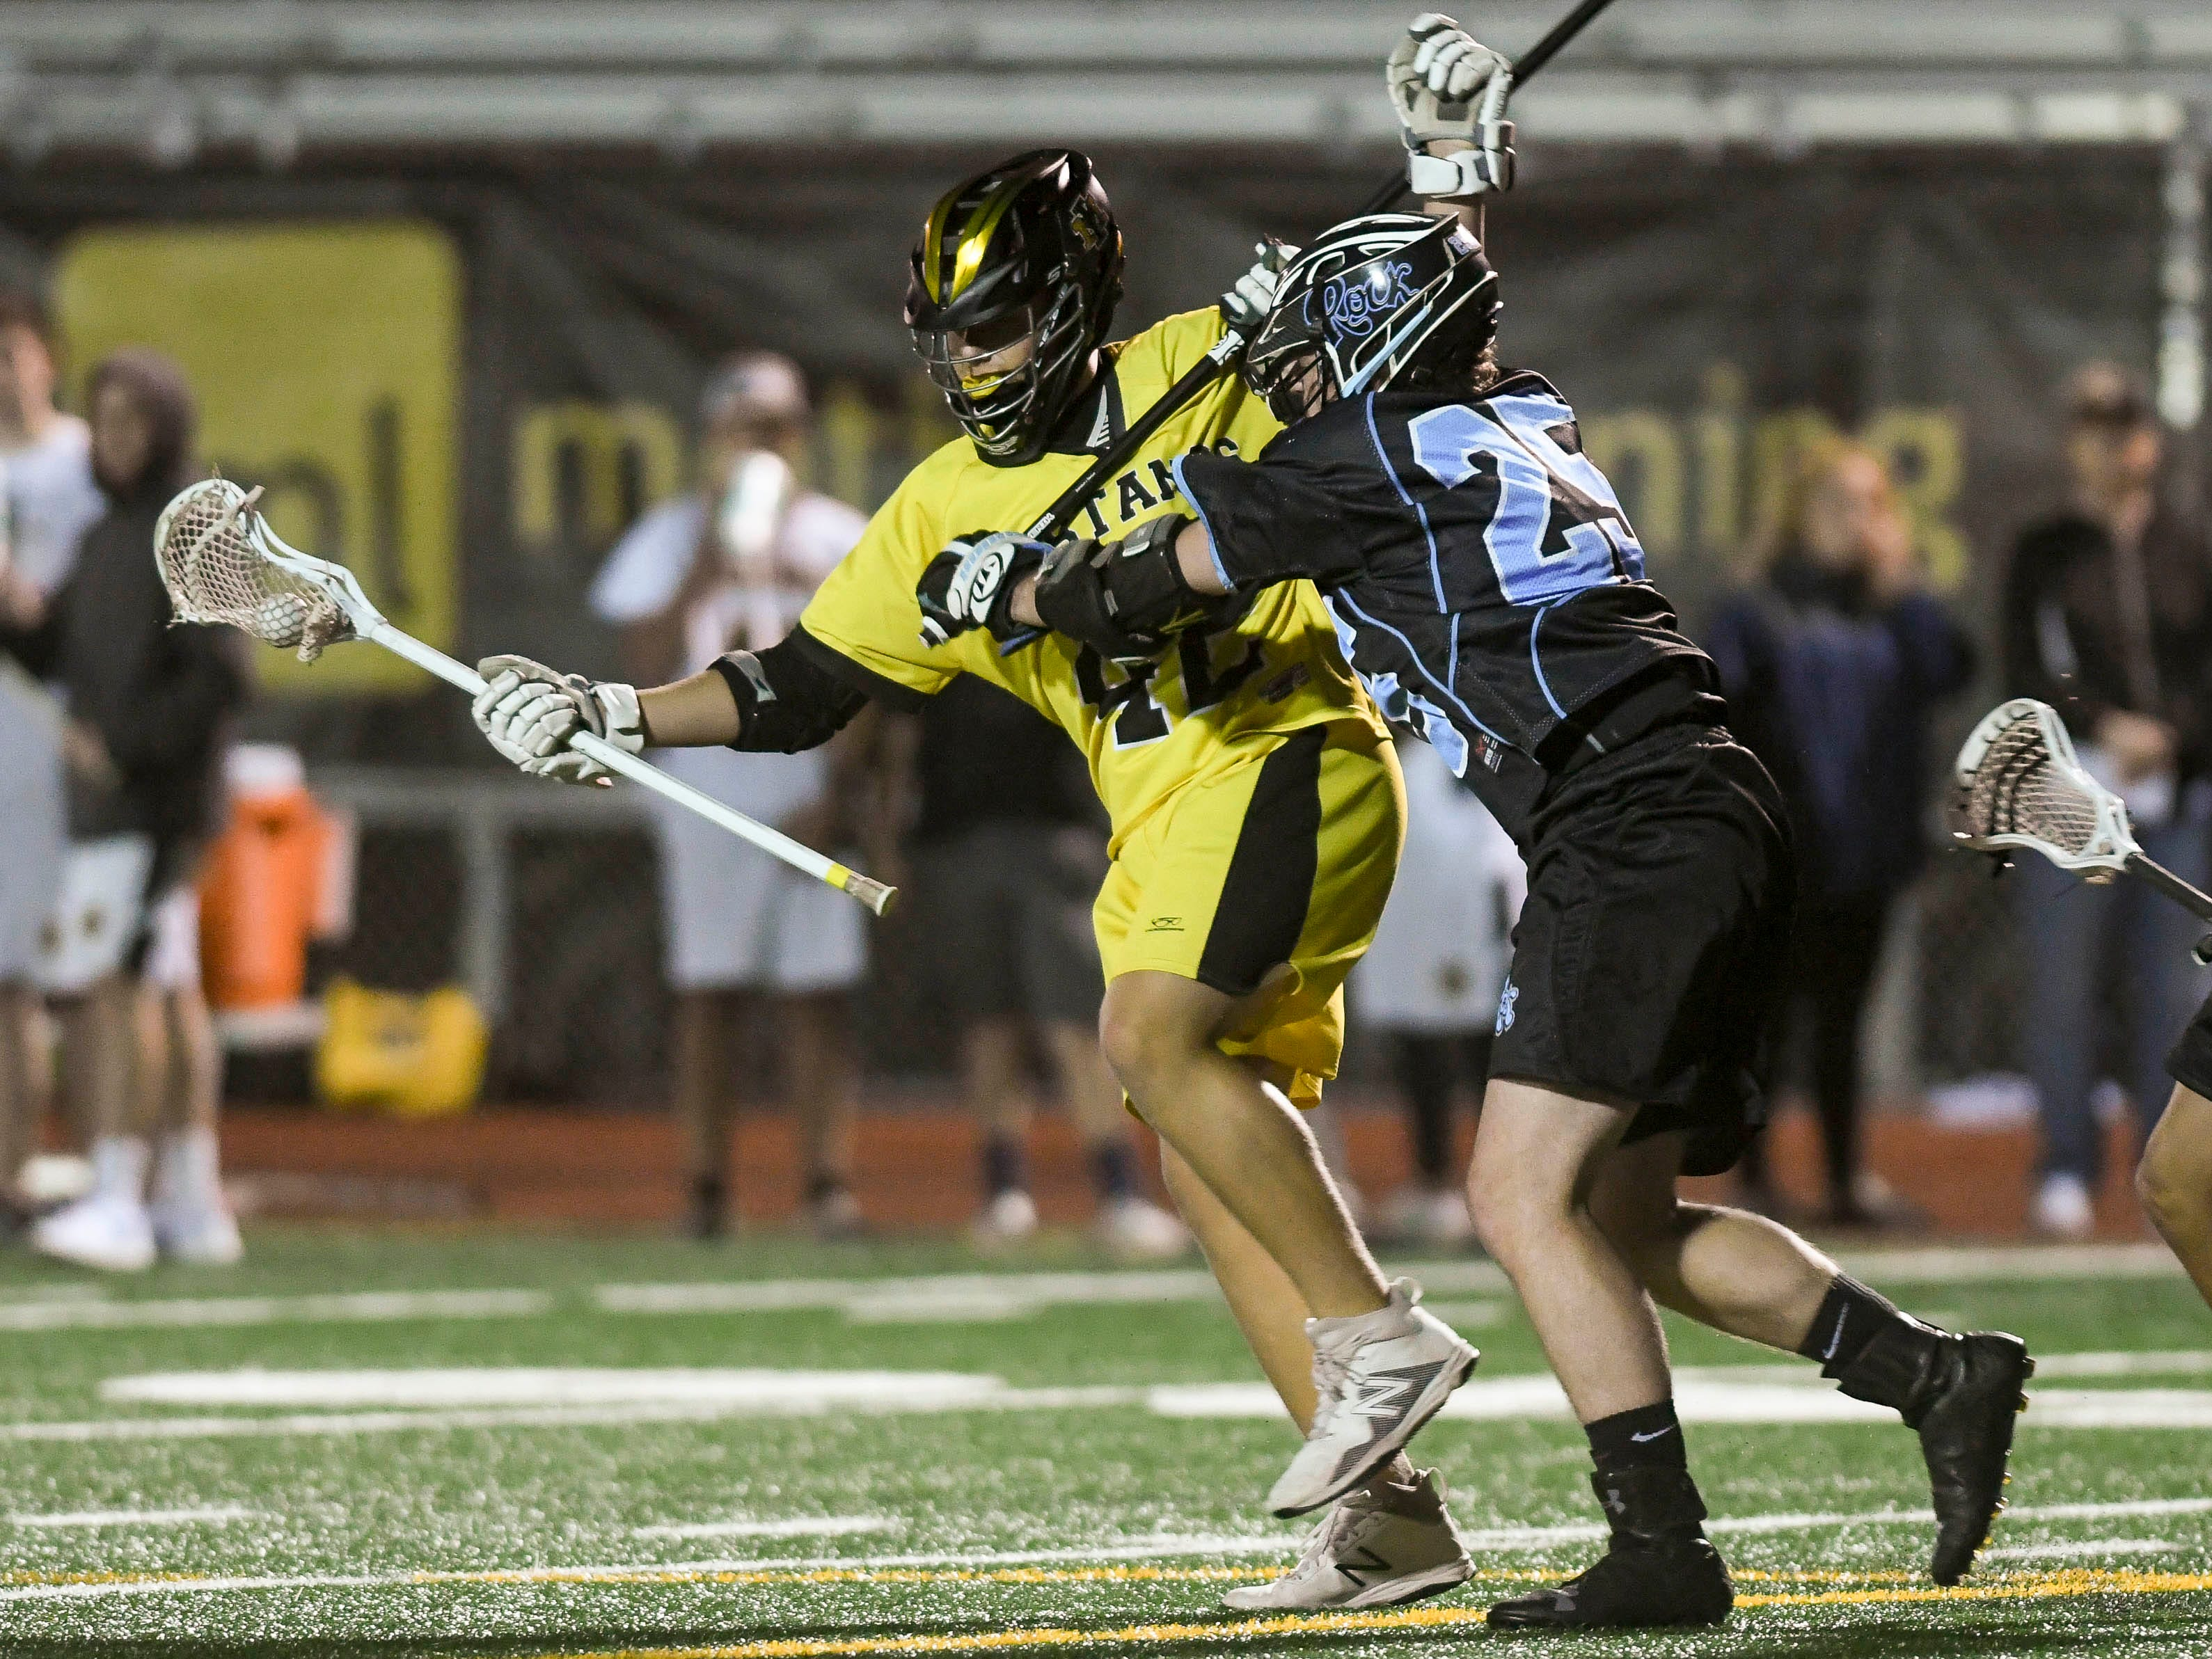 Gavin Stephenson of Merritt Island is checked by Eli Compton of Rockledge during Wednesday's game.